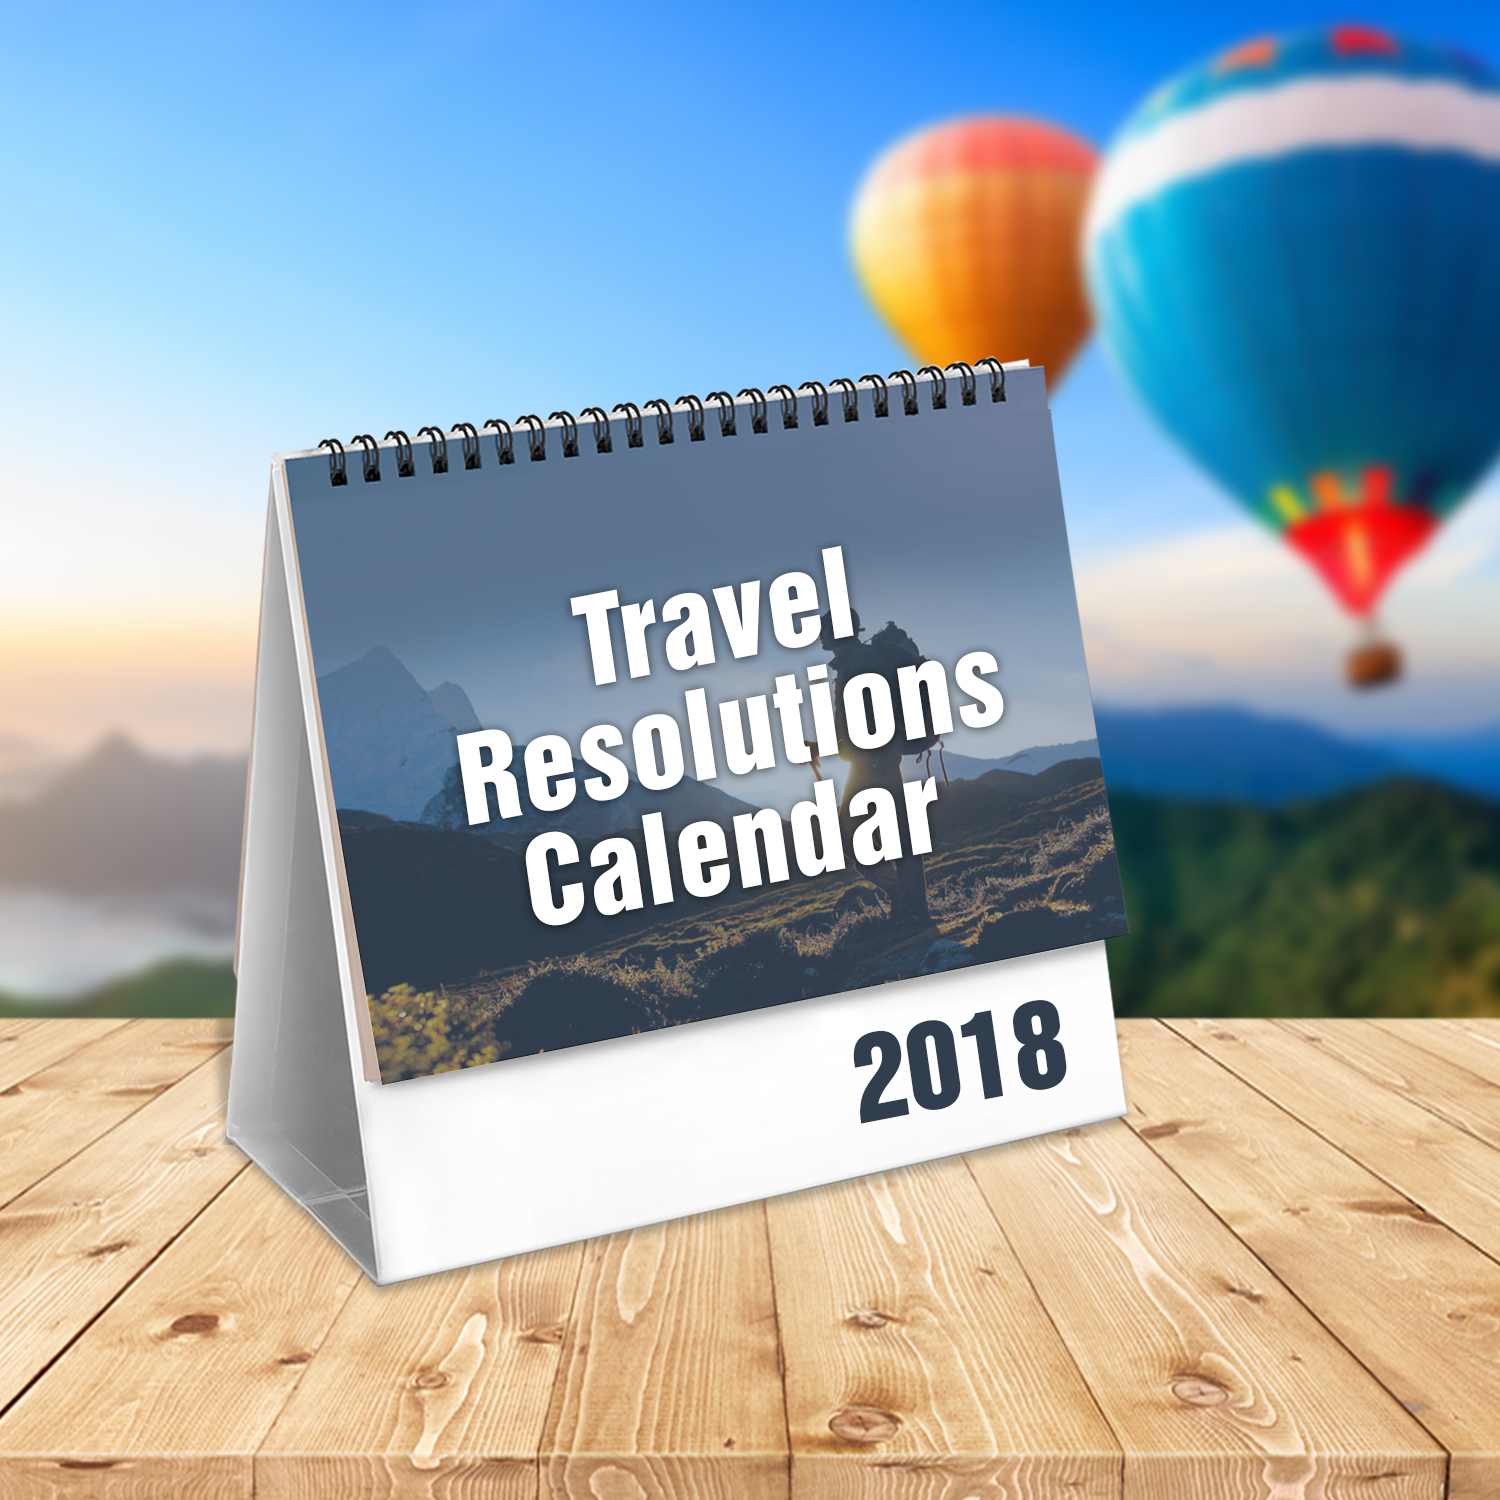 Travel Resolutions Calendar 2018